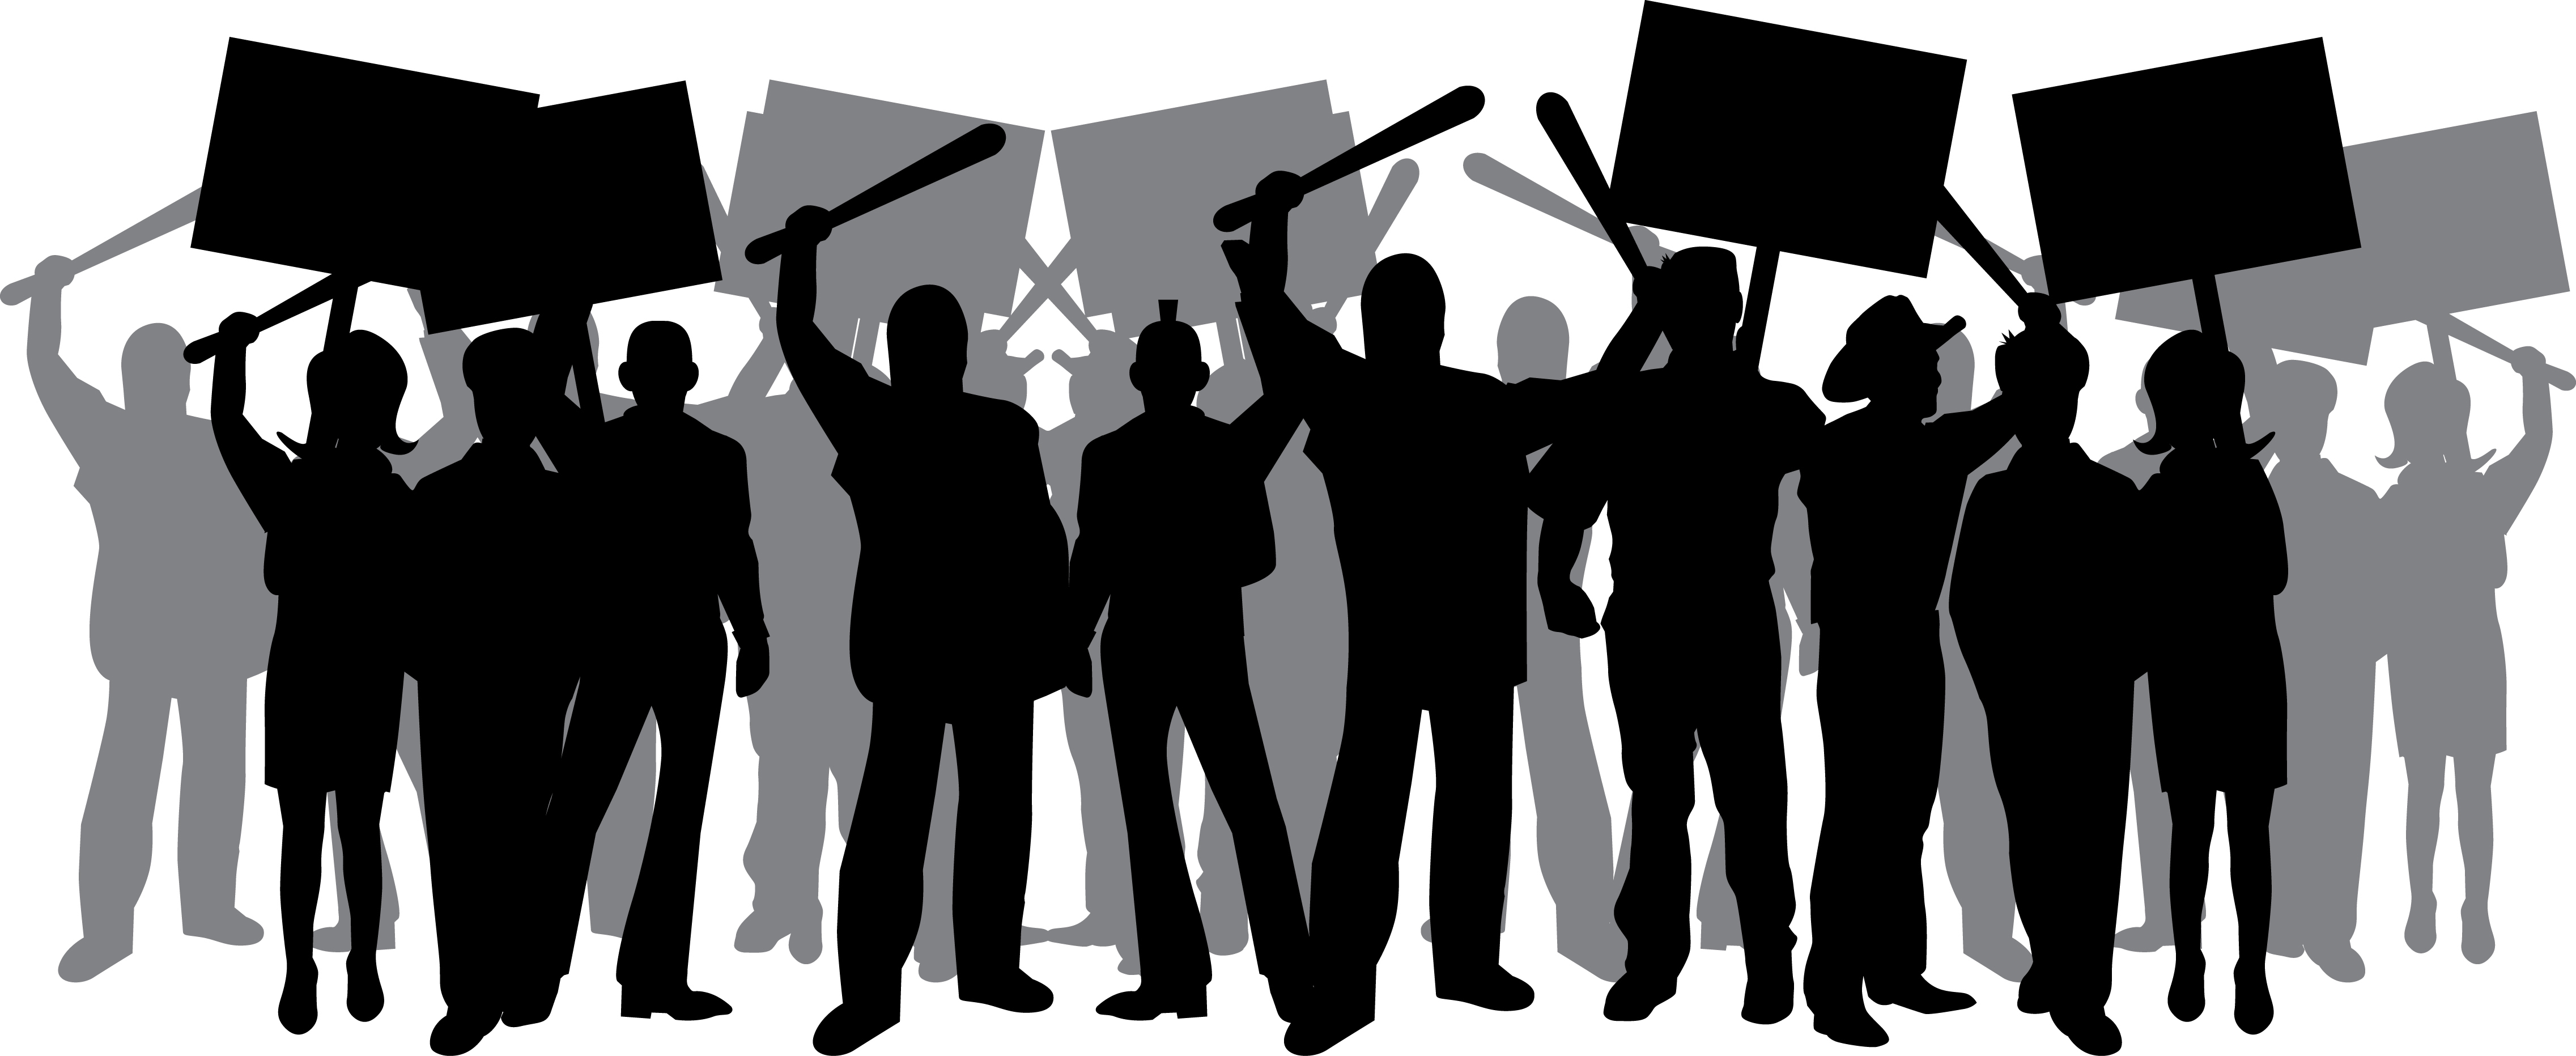 Peaceful protest clipart png Peaceful Protest Clipart (92+ images in Collection) Page 1 png